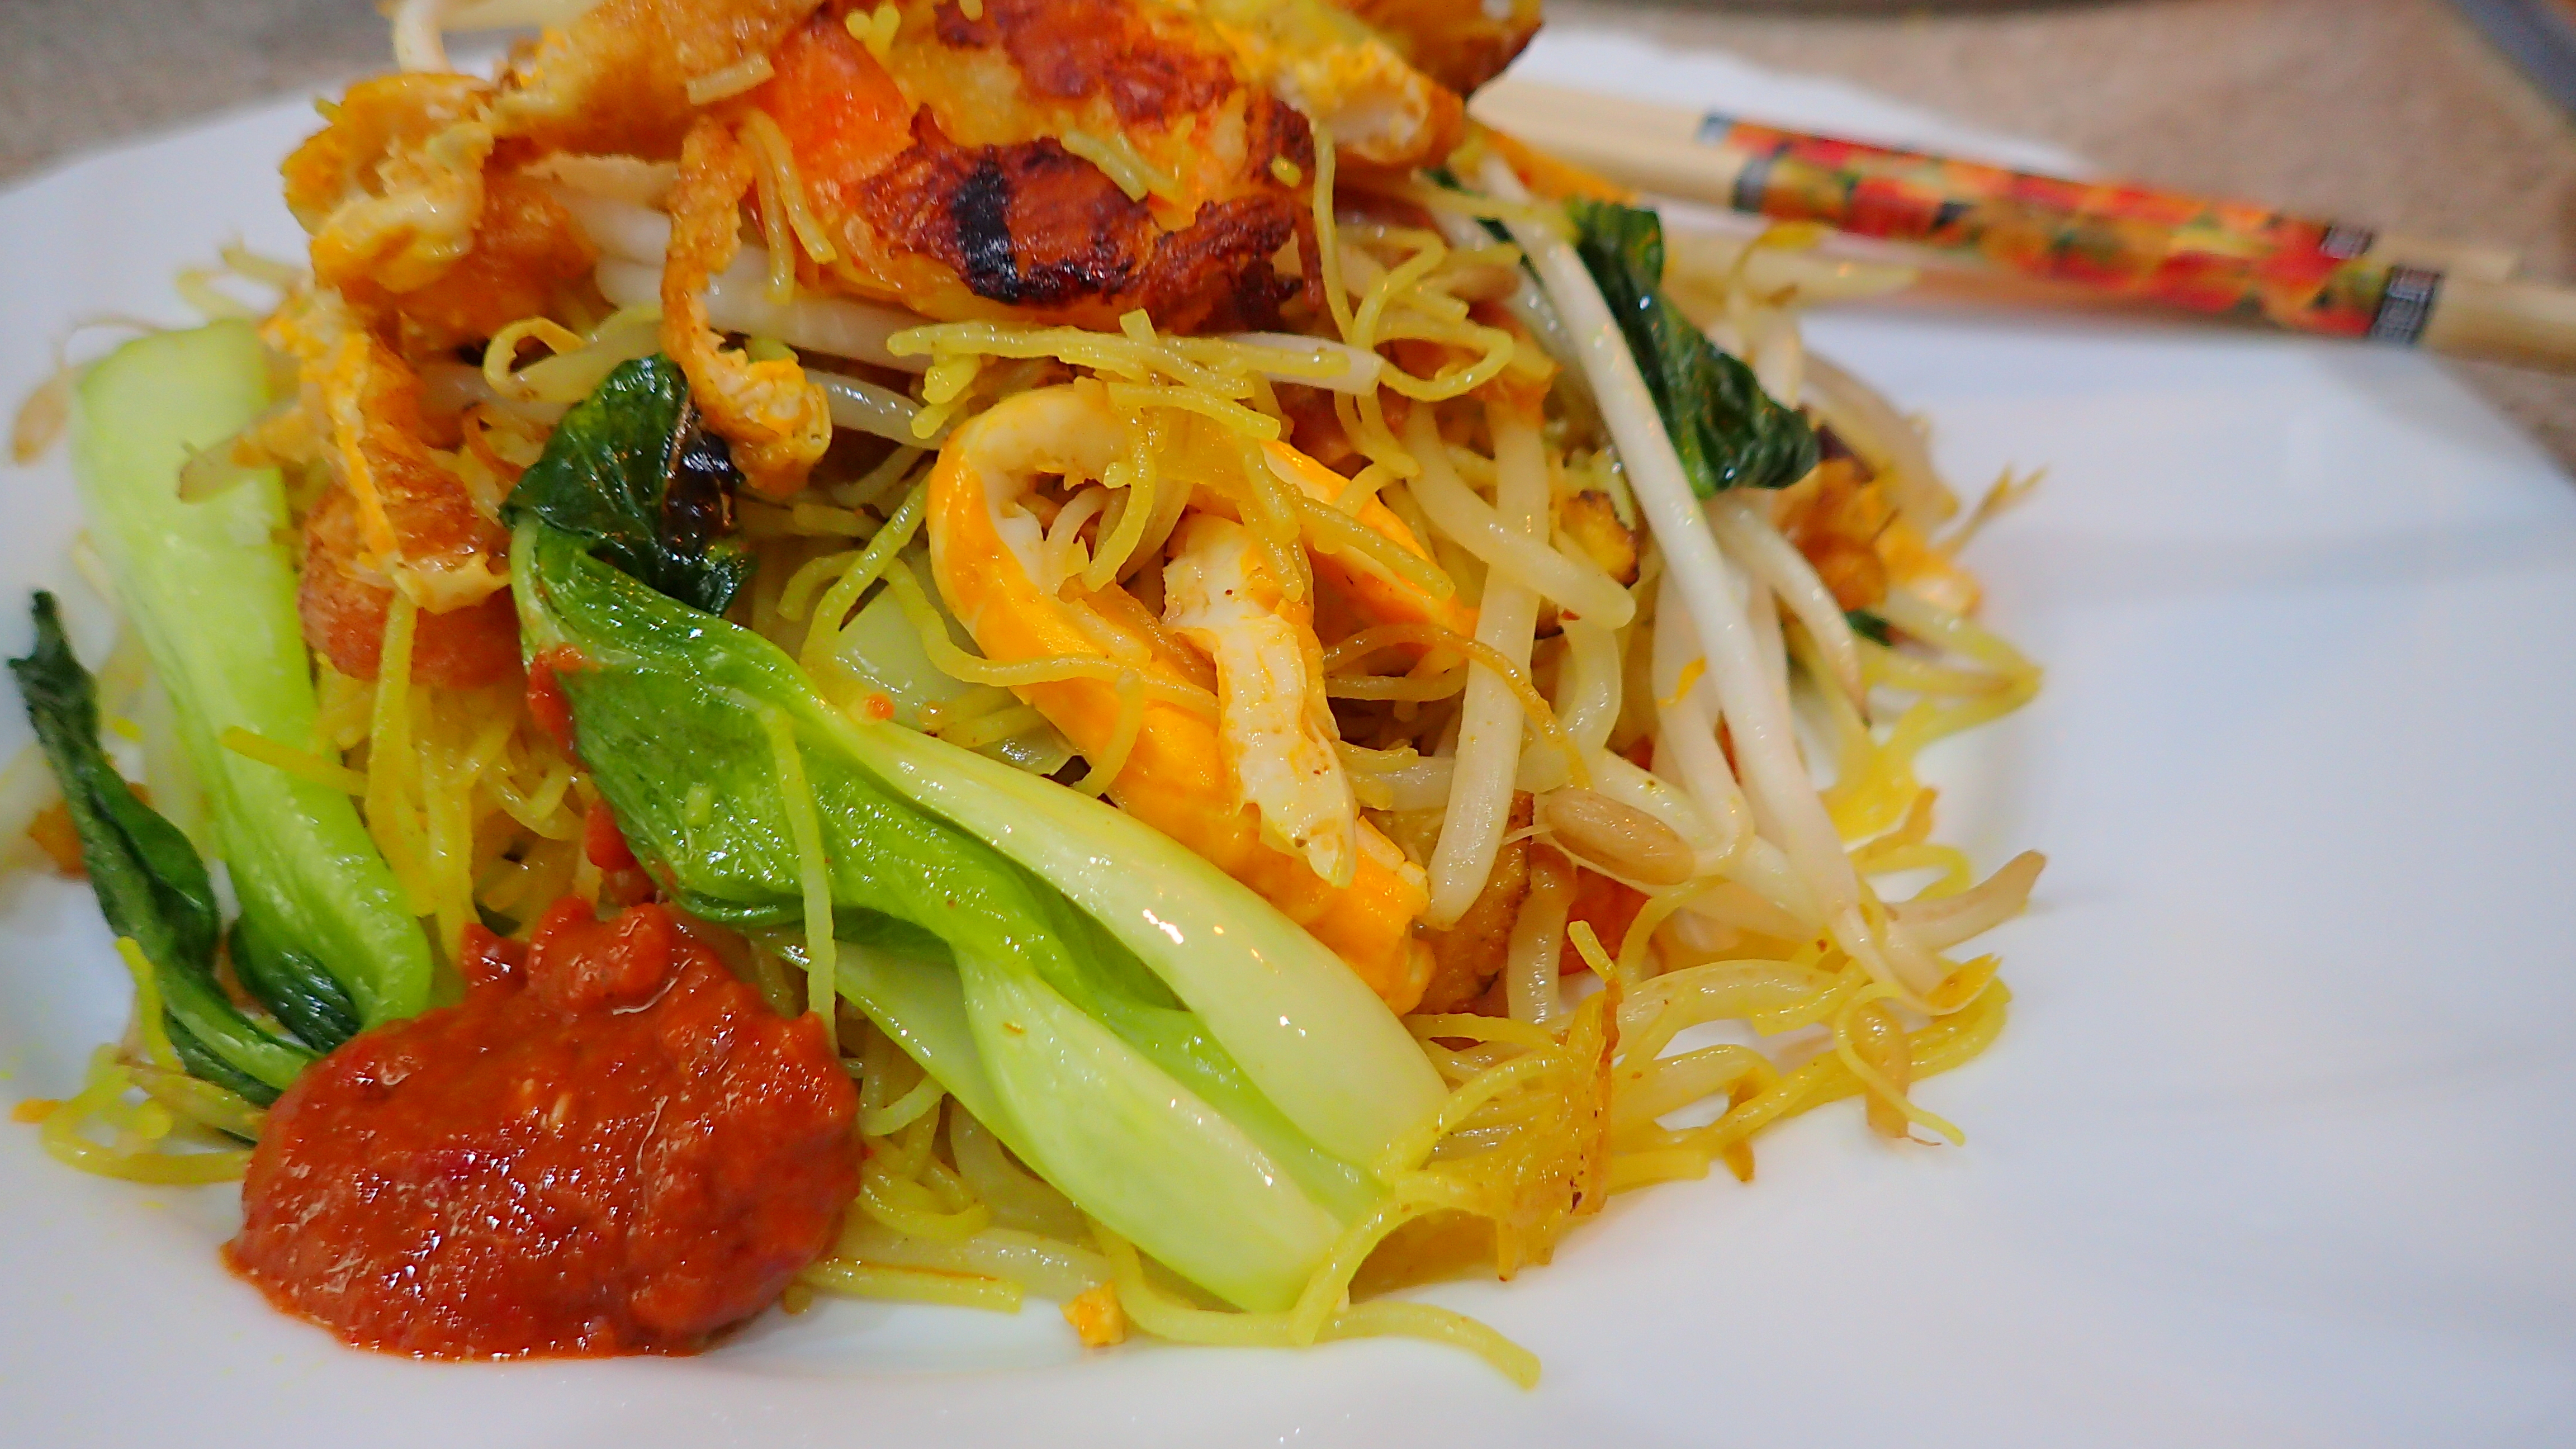 Stir fry rice vermicelli with dried shrimps